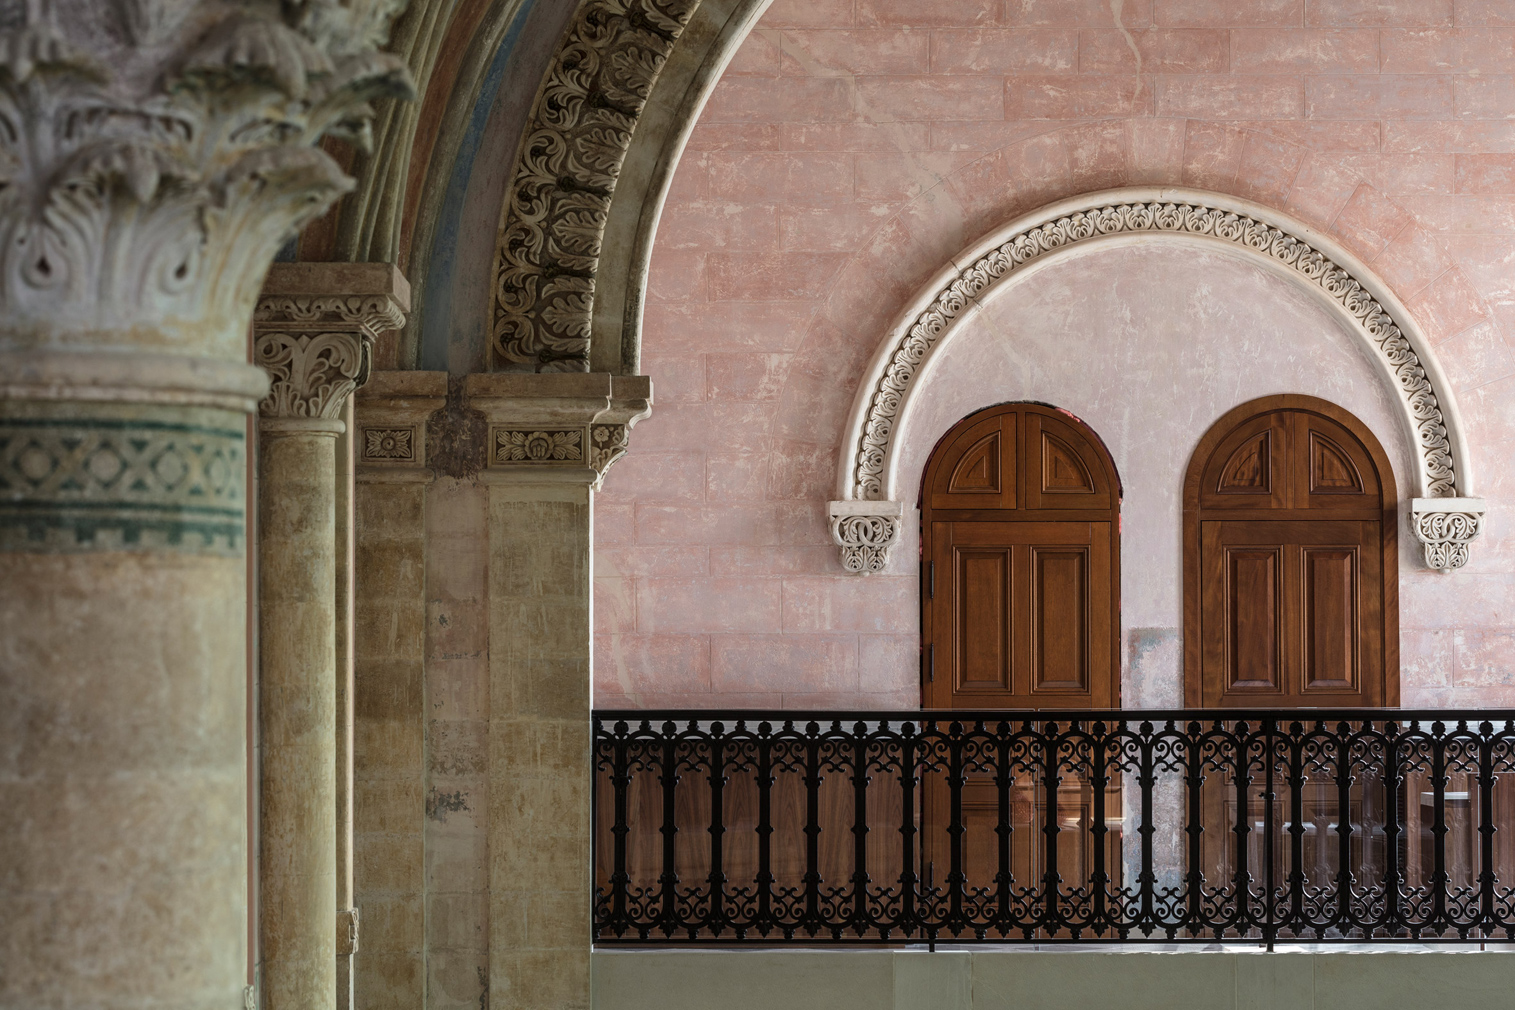 John Pawson turns a former convent and hospital into the Jaffa Hotel in Tel Aviv